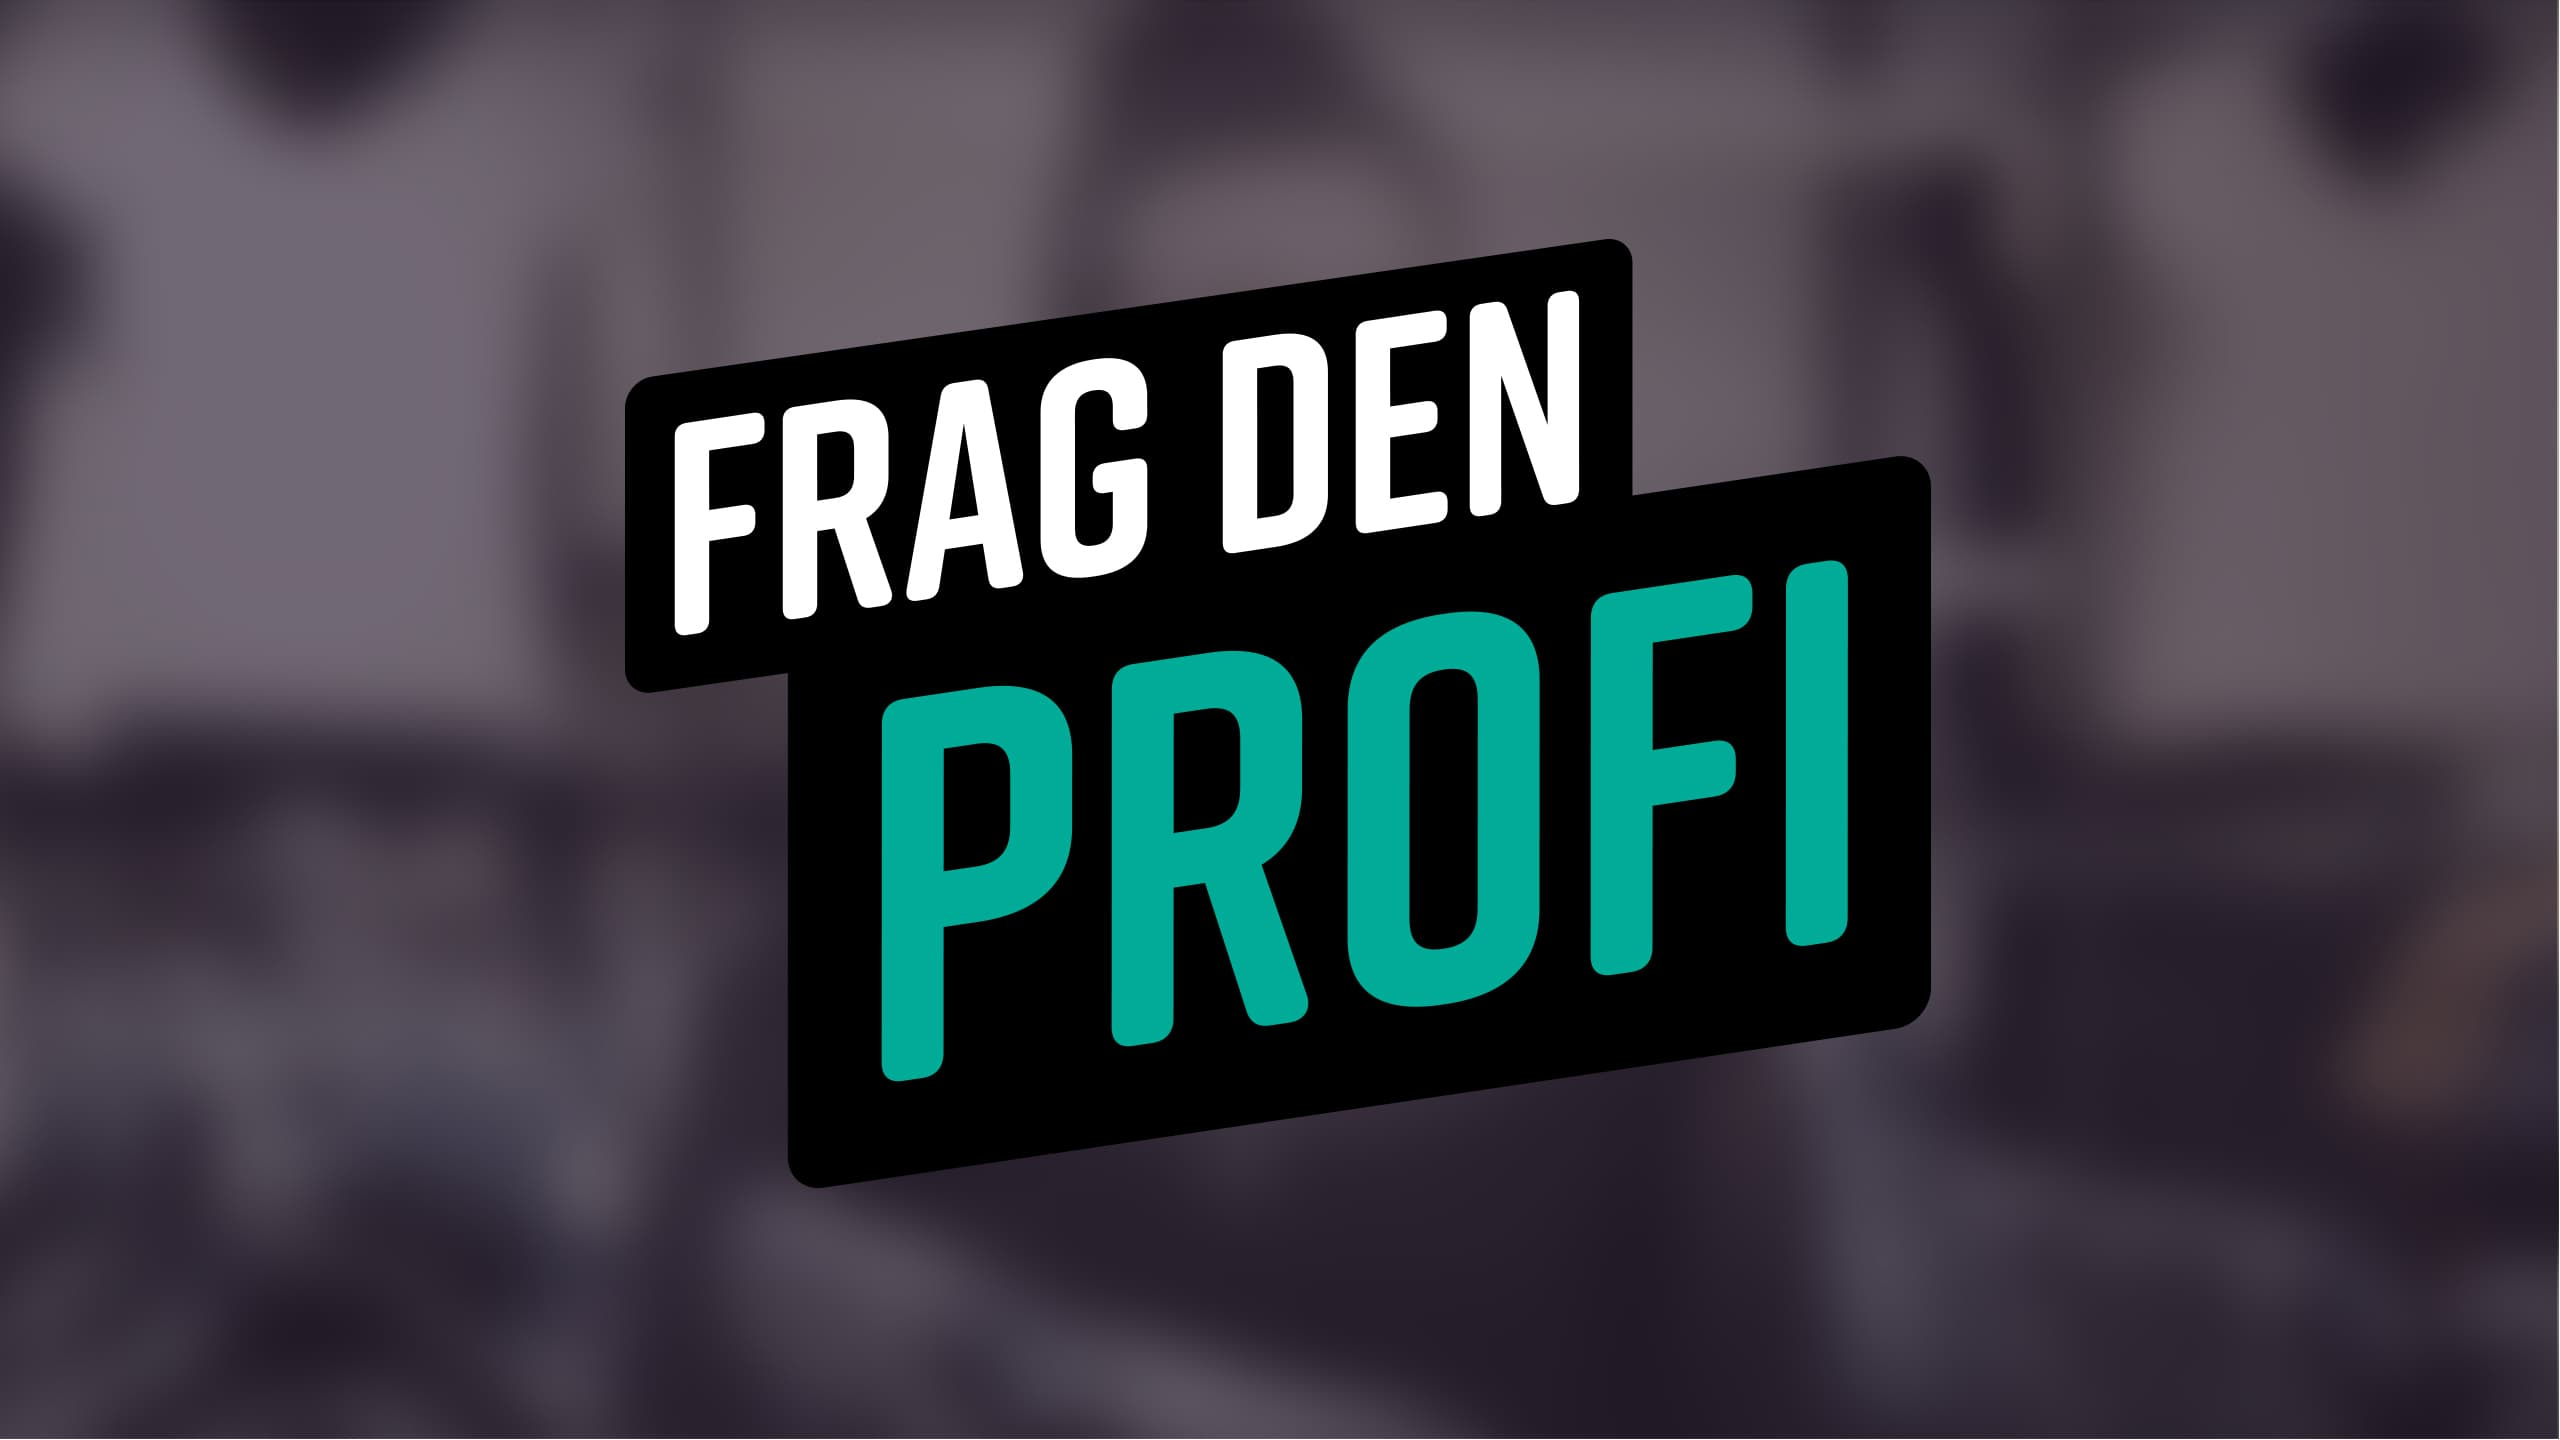 https://www.jetztschonprofi.de/wp-content/uploads/2019/06/FAQ@2x_small.jpg